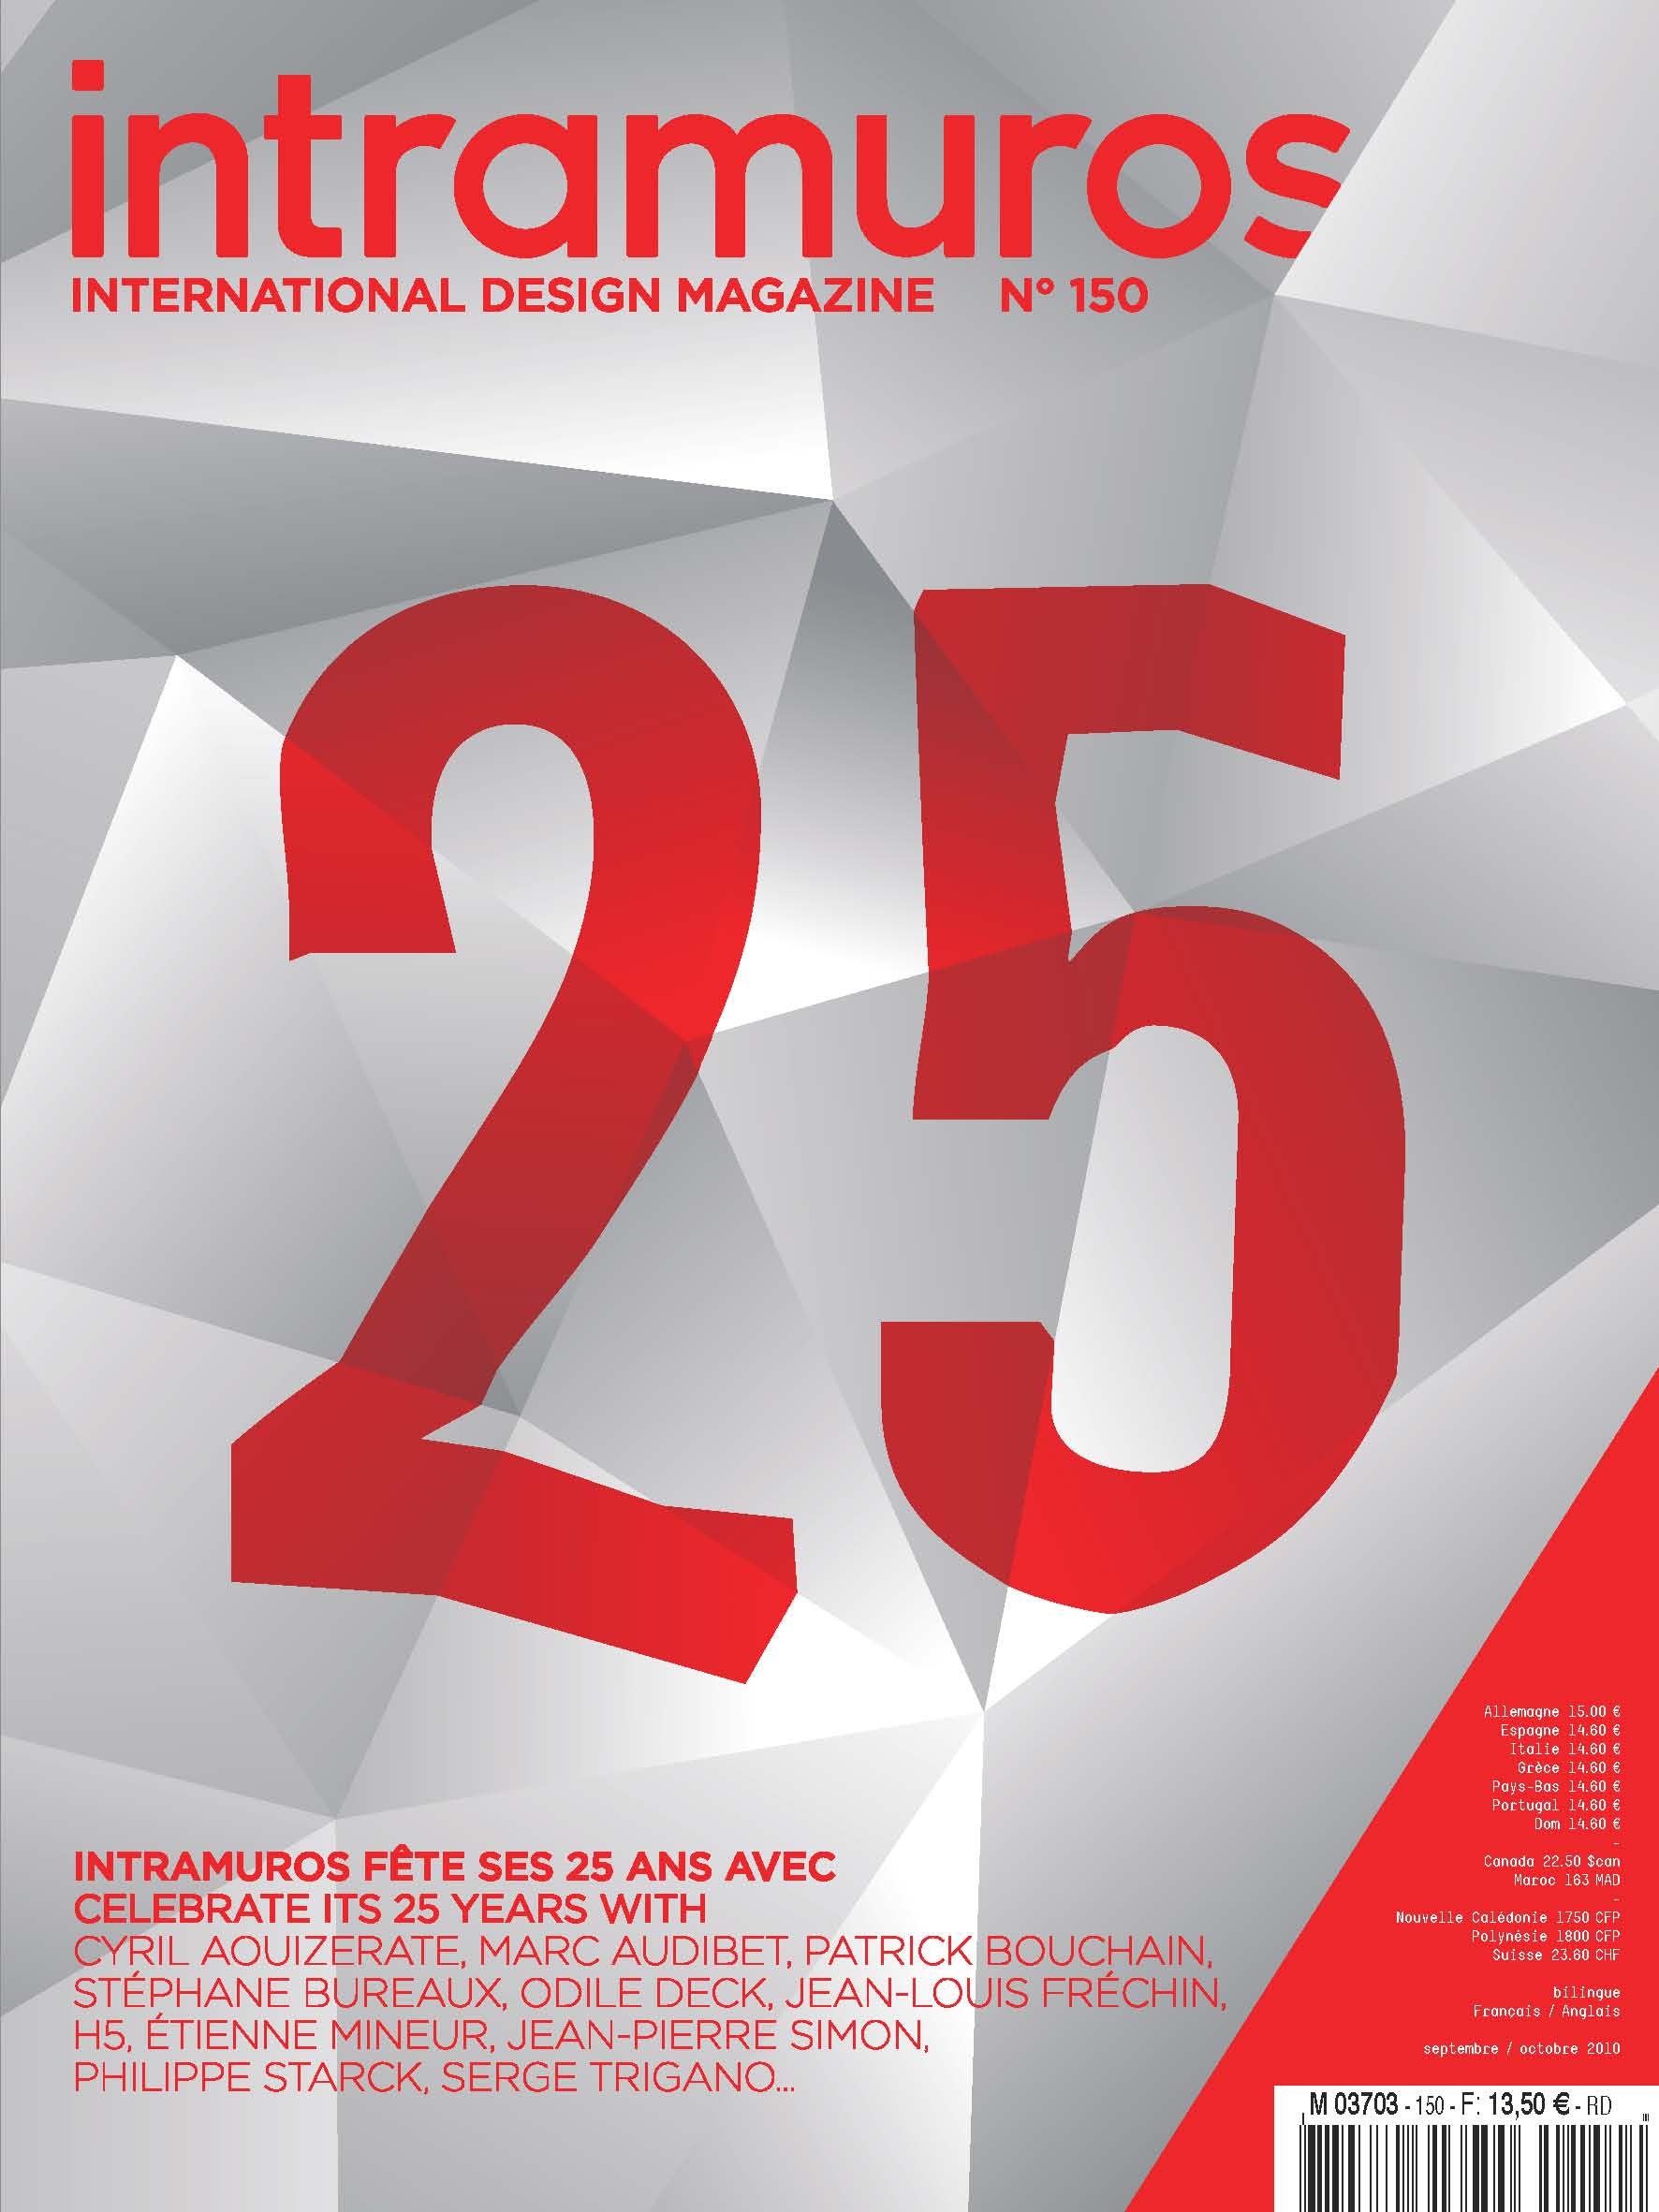 Intramuros International Design Magazine , N. 150.  My design was featured as part of this September 2010 issue.